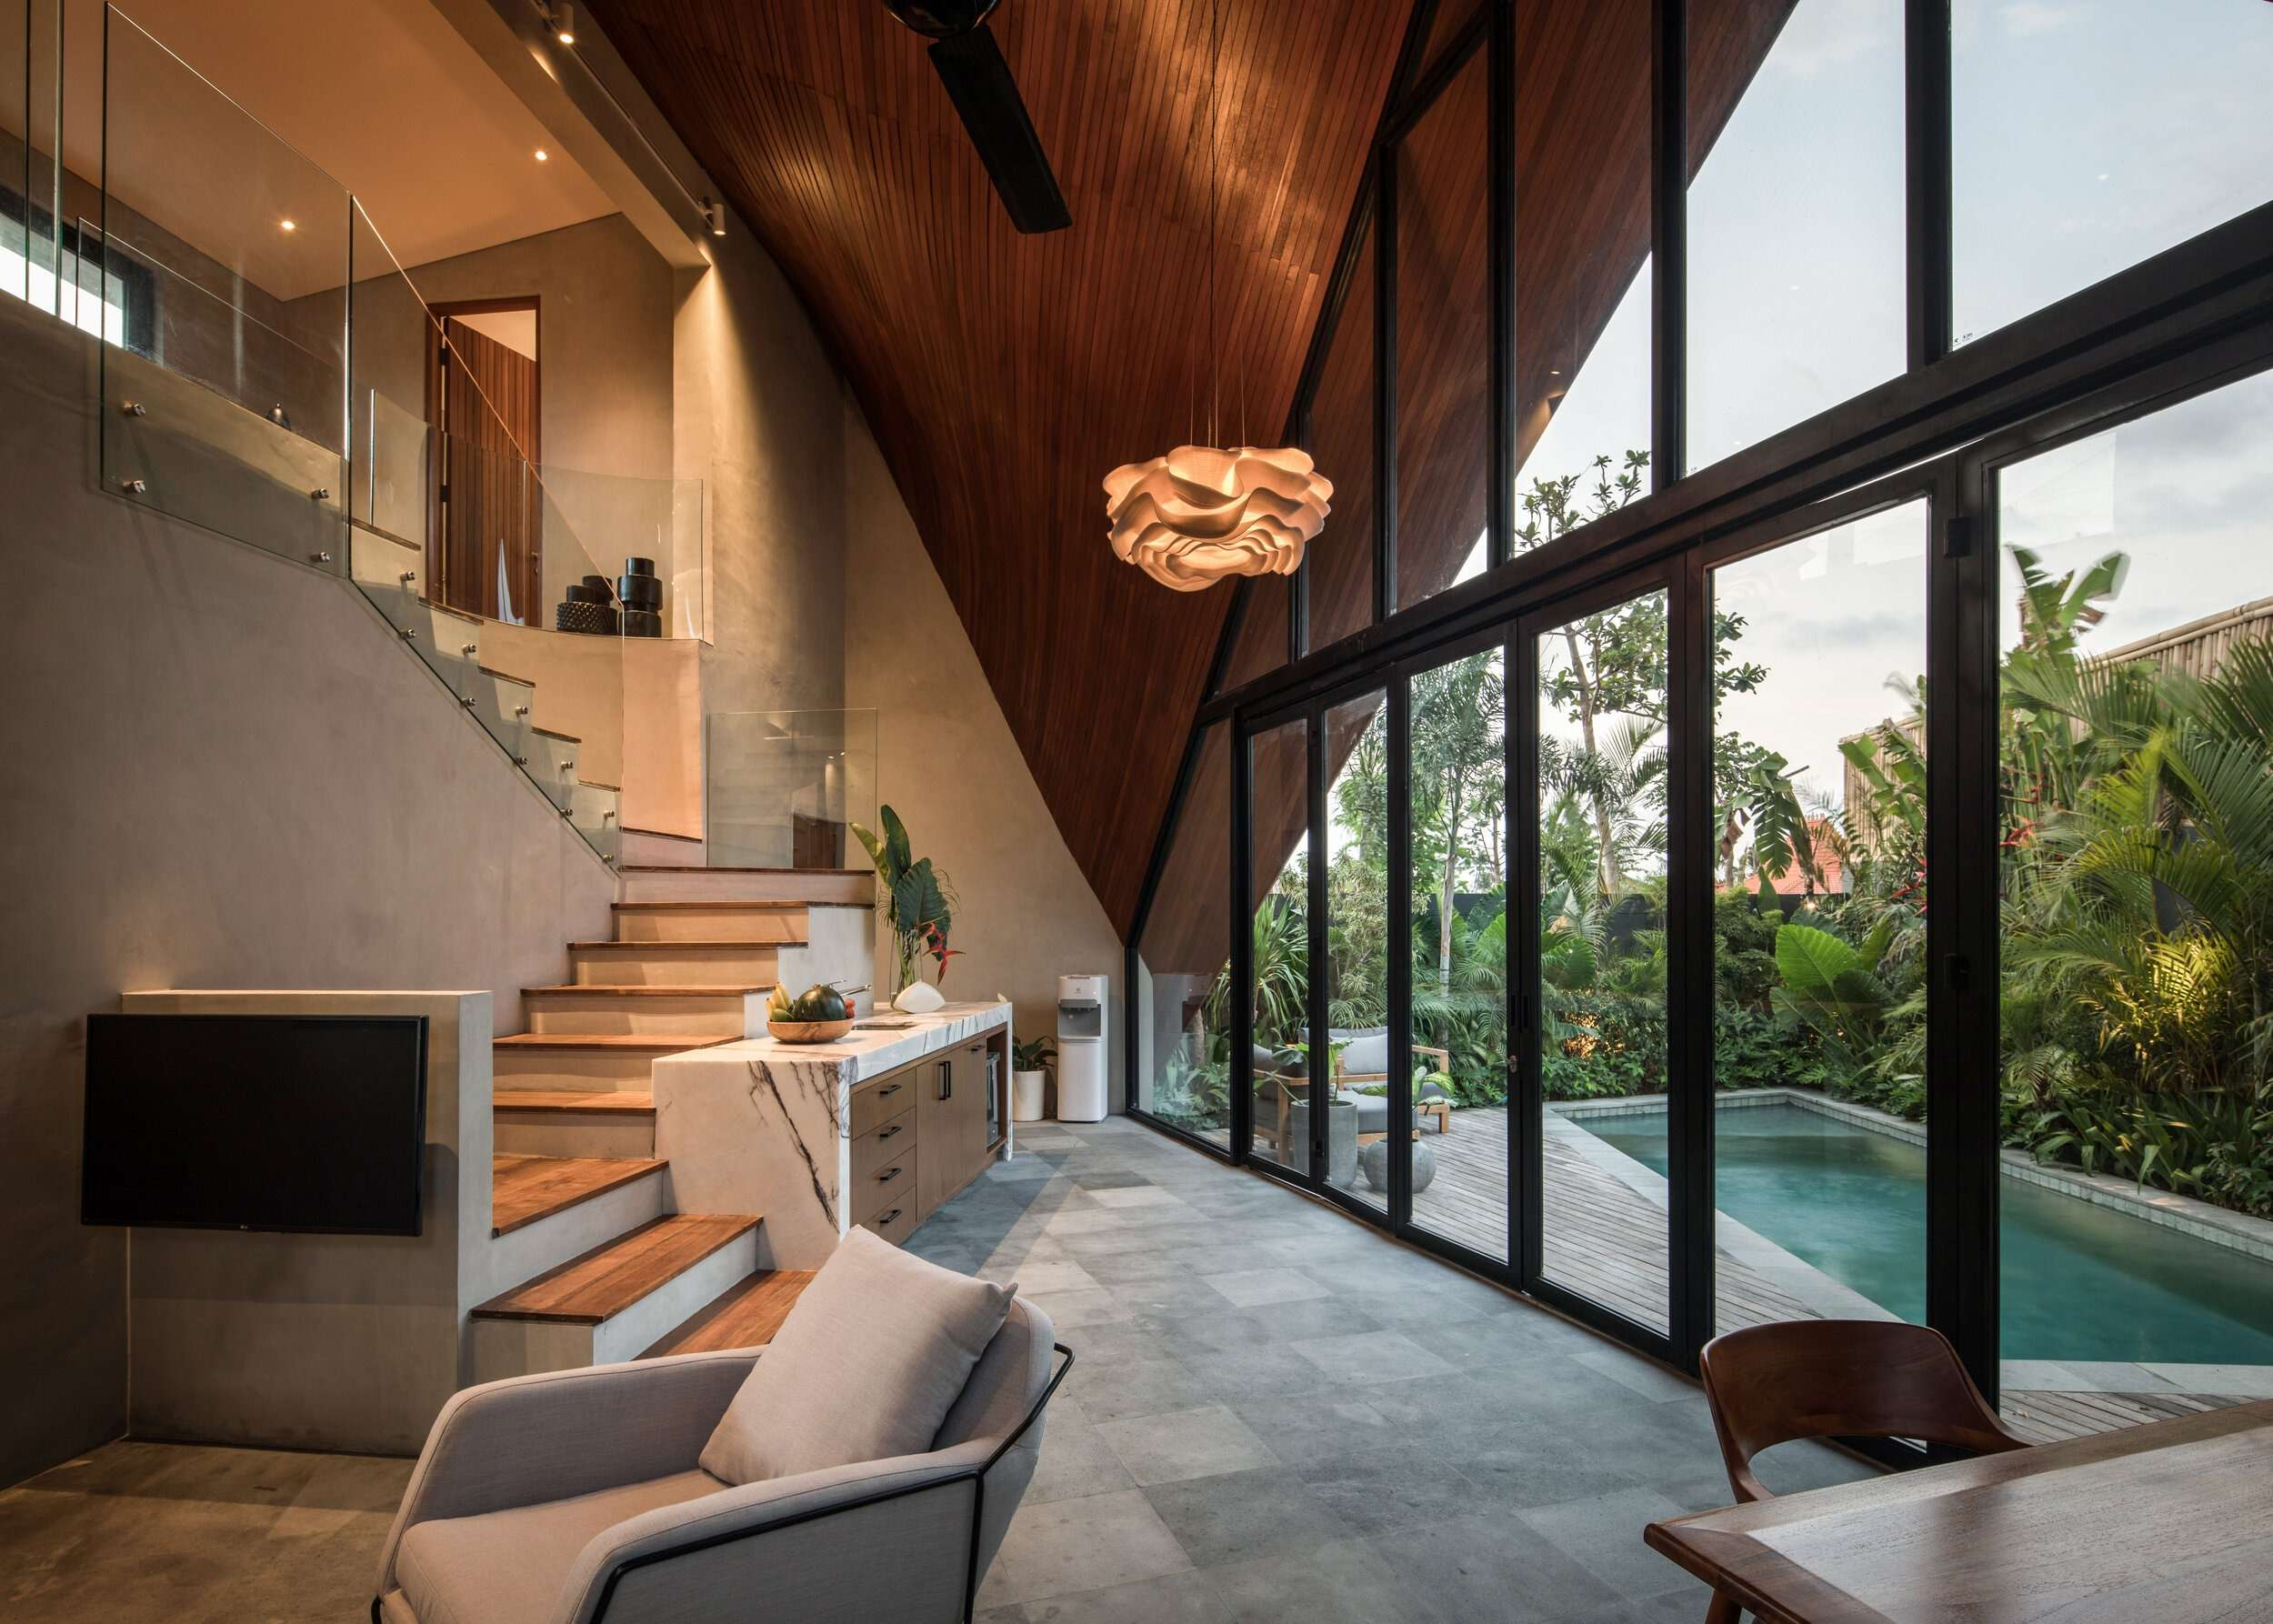 wooden staircase in the centre of a living space with high ceilings and a glass wall with swimming pool outside, at Riverhouse Bali